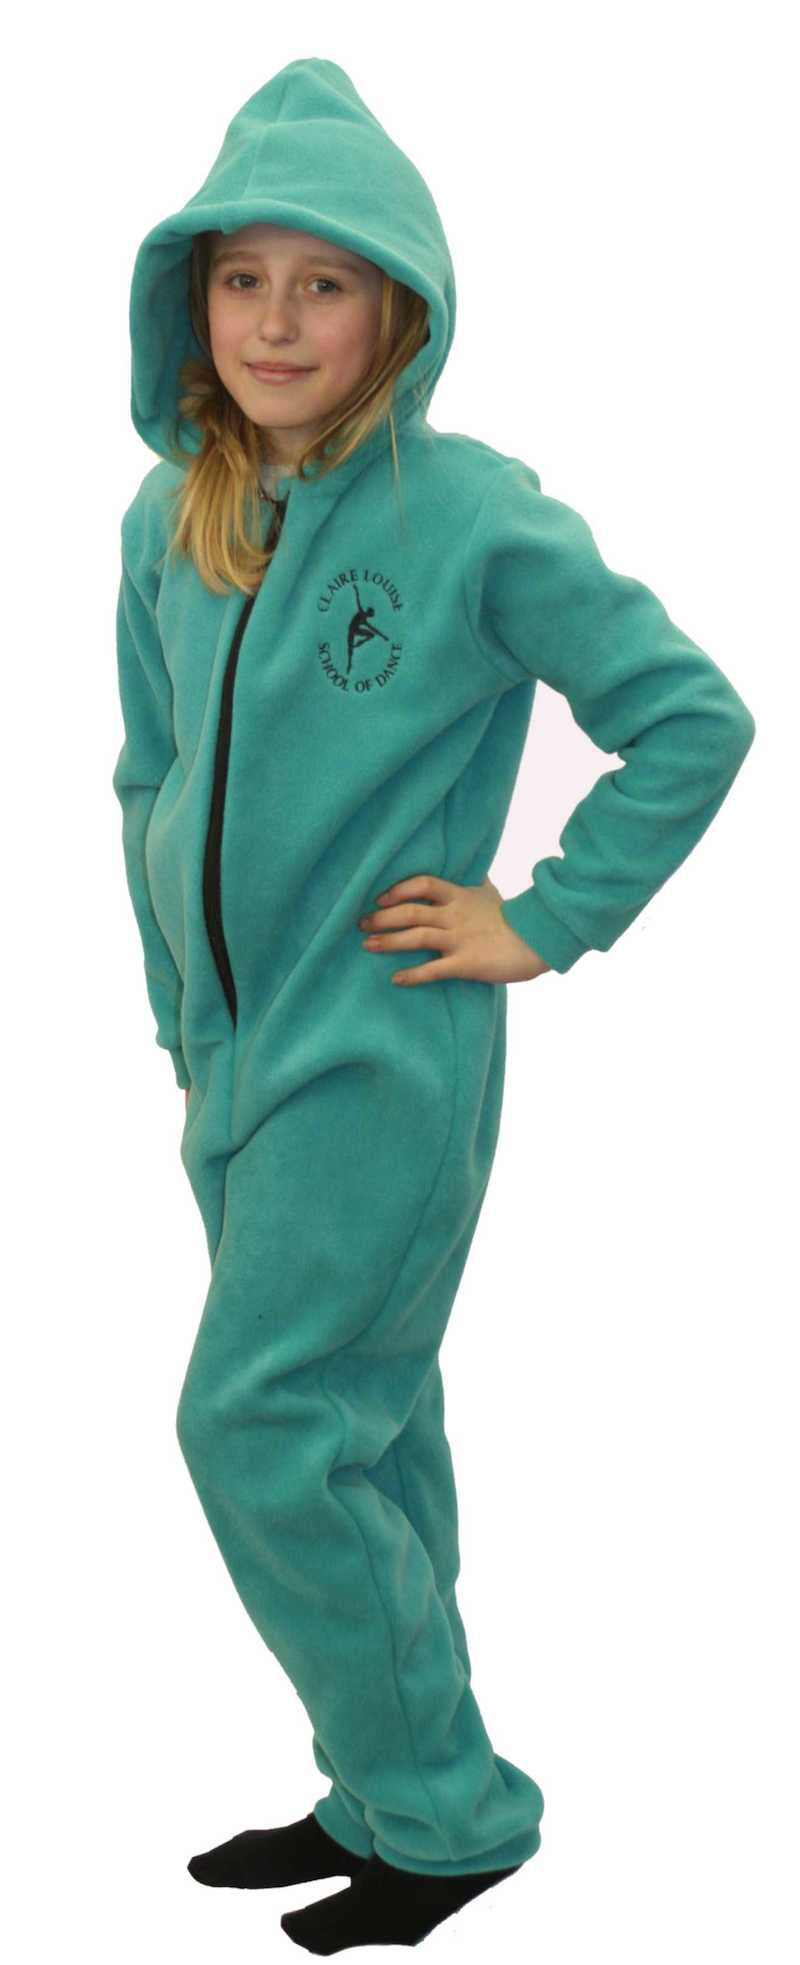 Onesies with club logos